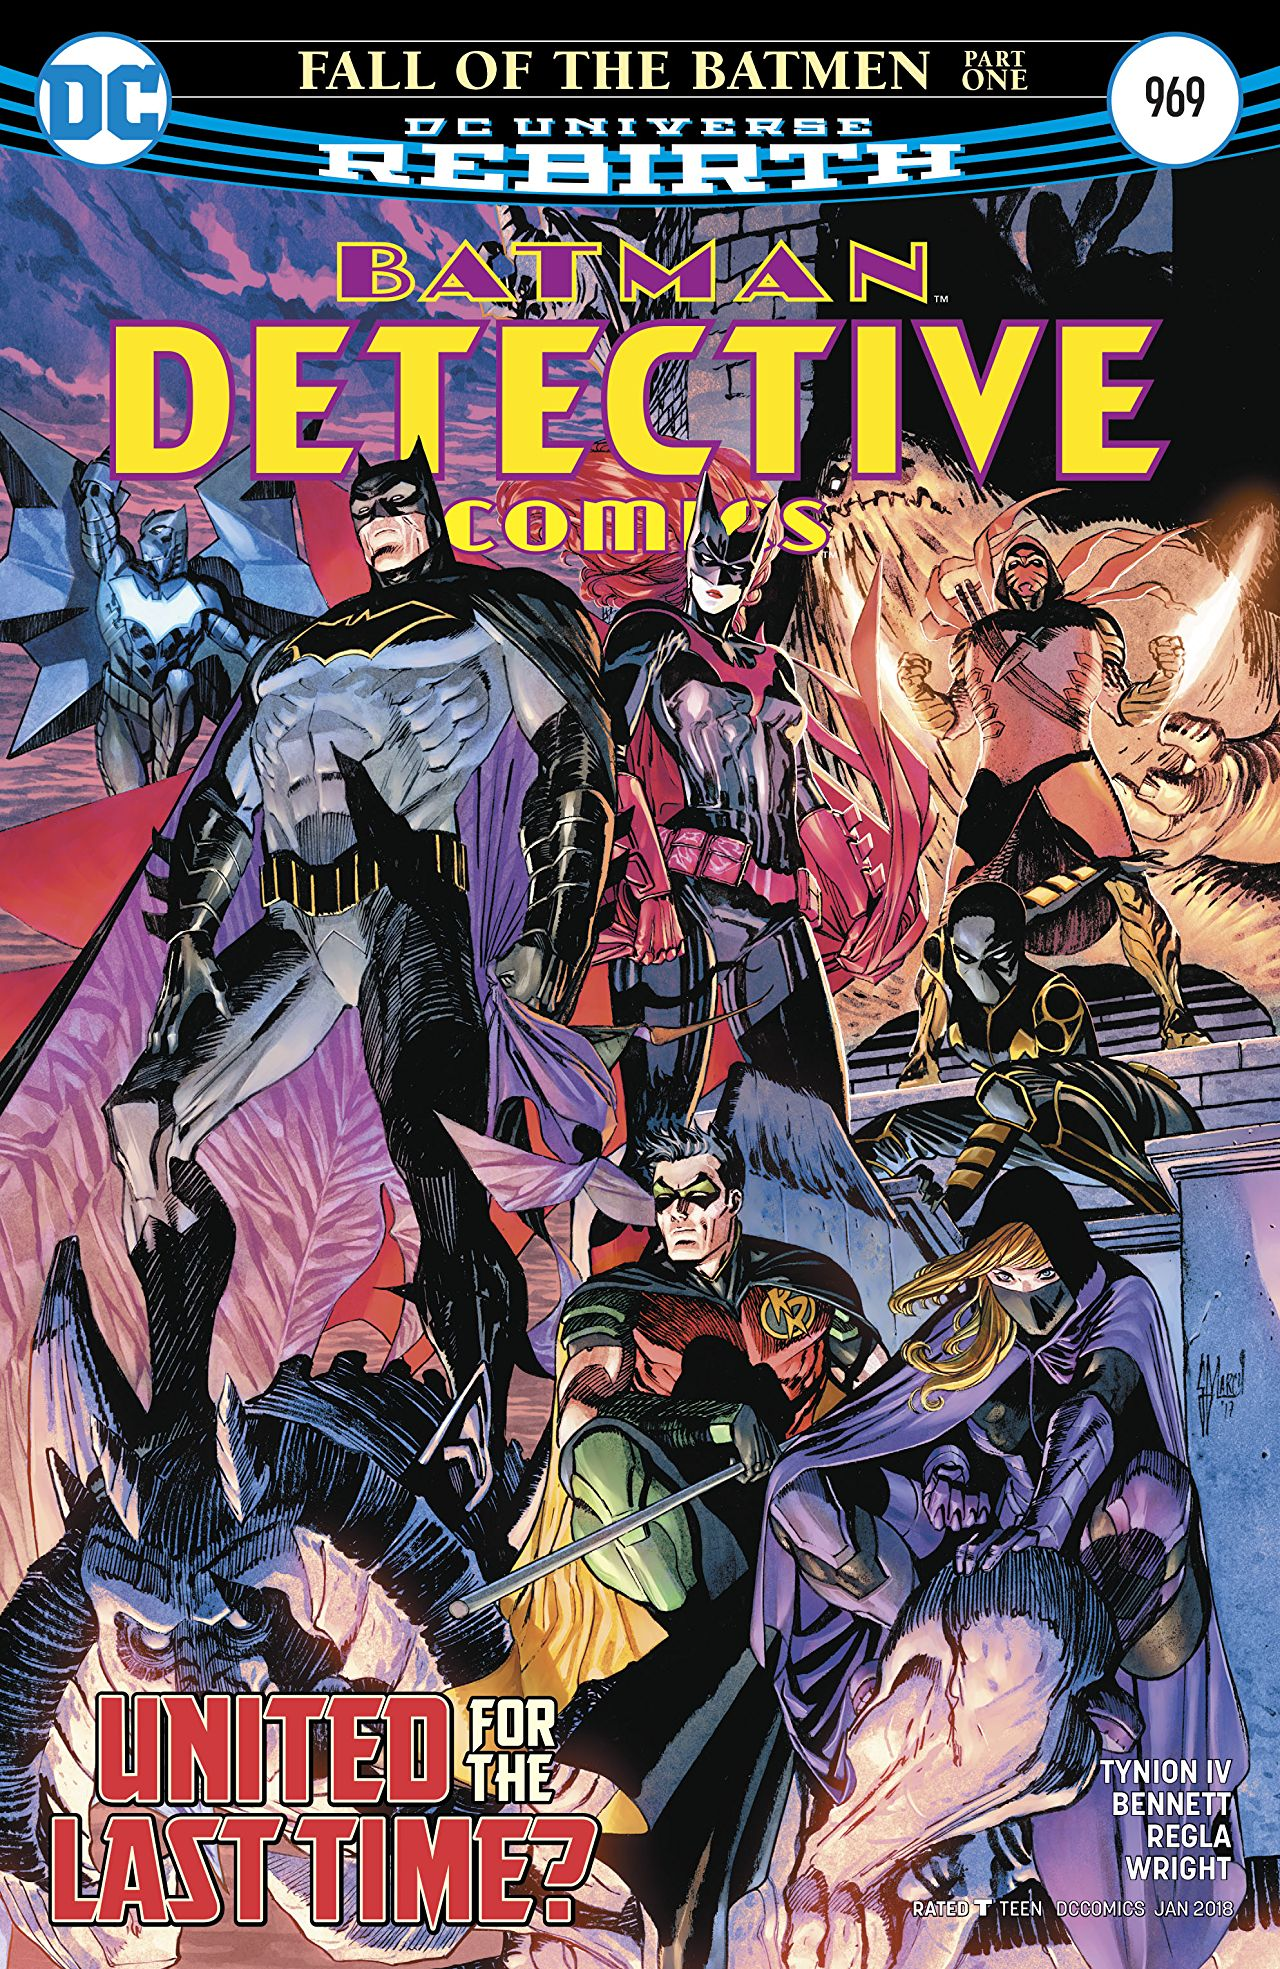 The cover for the next issue of Detective - Fall Of The Batmen Pt. 1